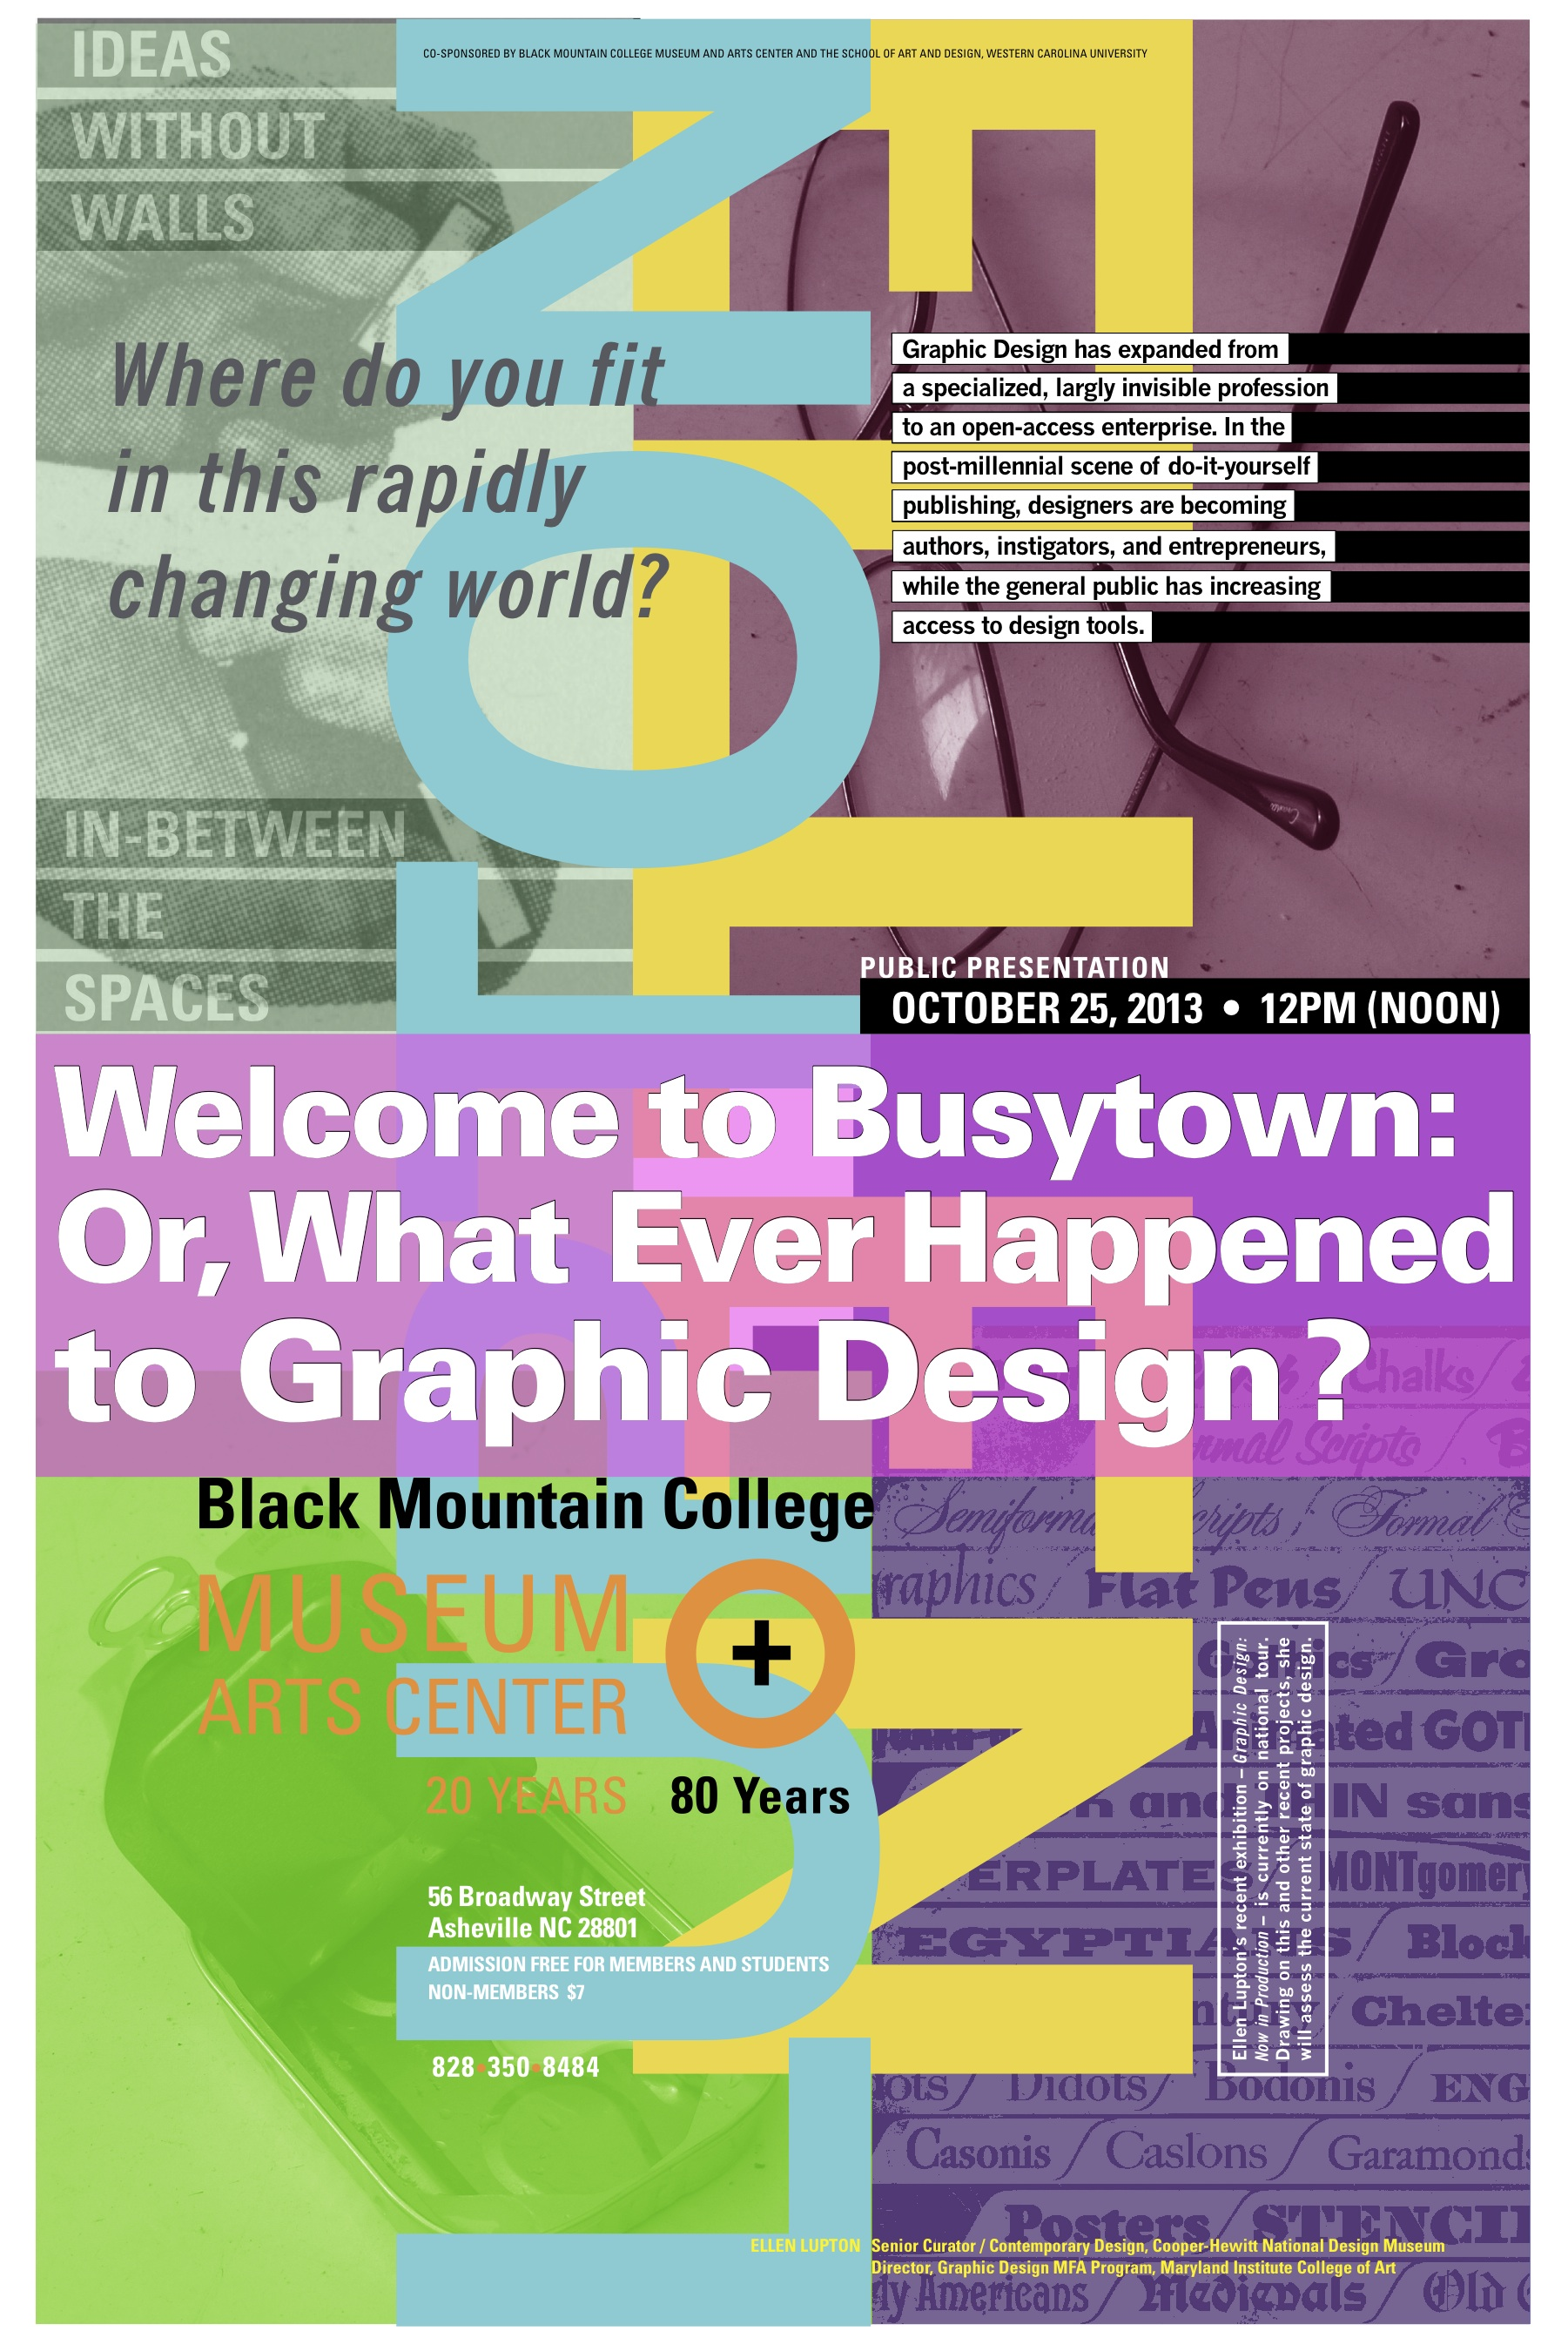 Welcome to busytown or what ever happened to graphic design luptonbusytown solutioingenieria Choice Image